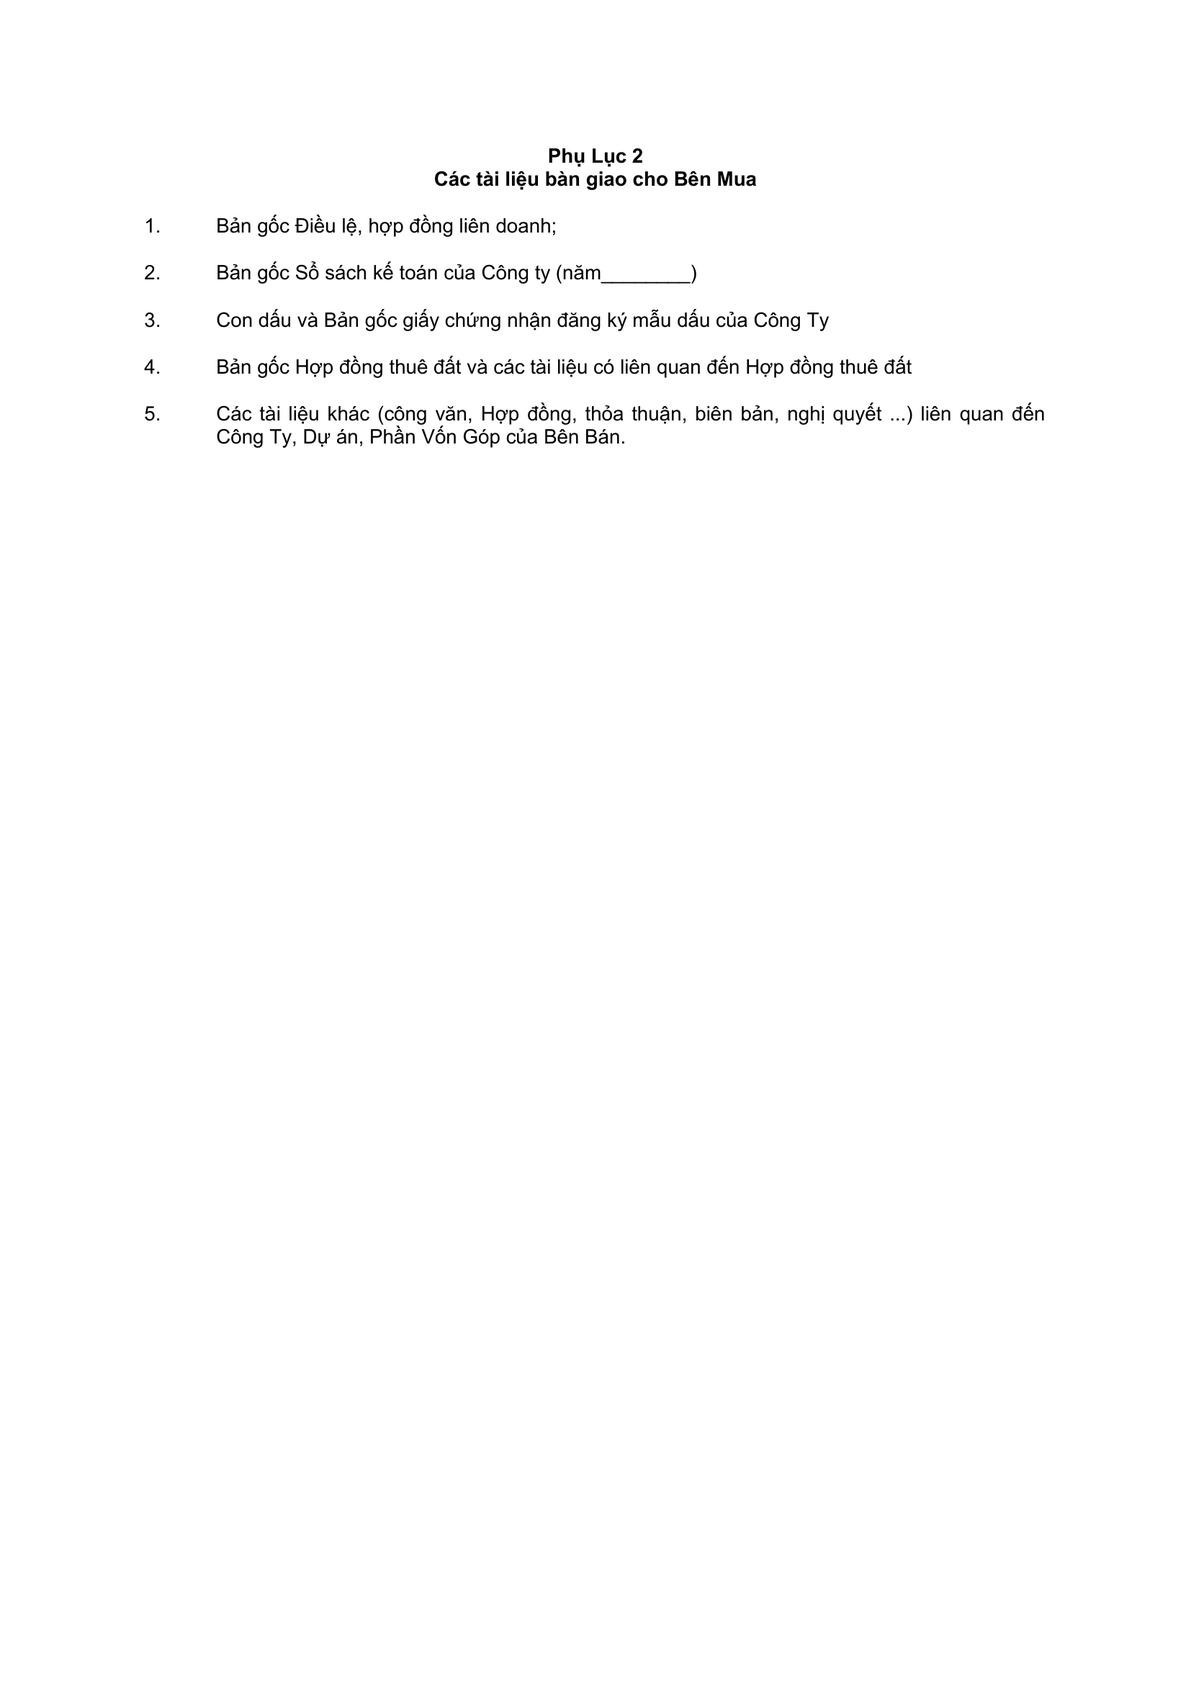 Subsciption agreement (option of buying the share)-4